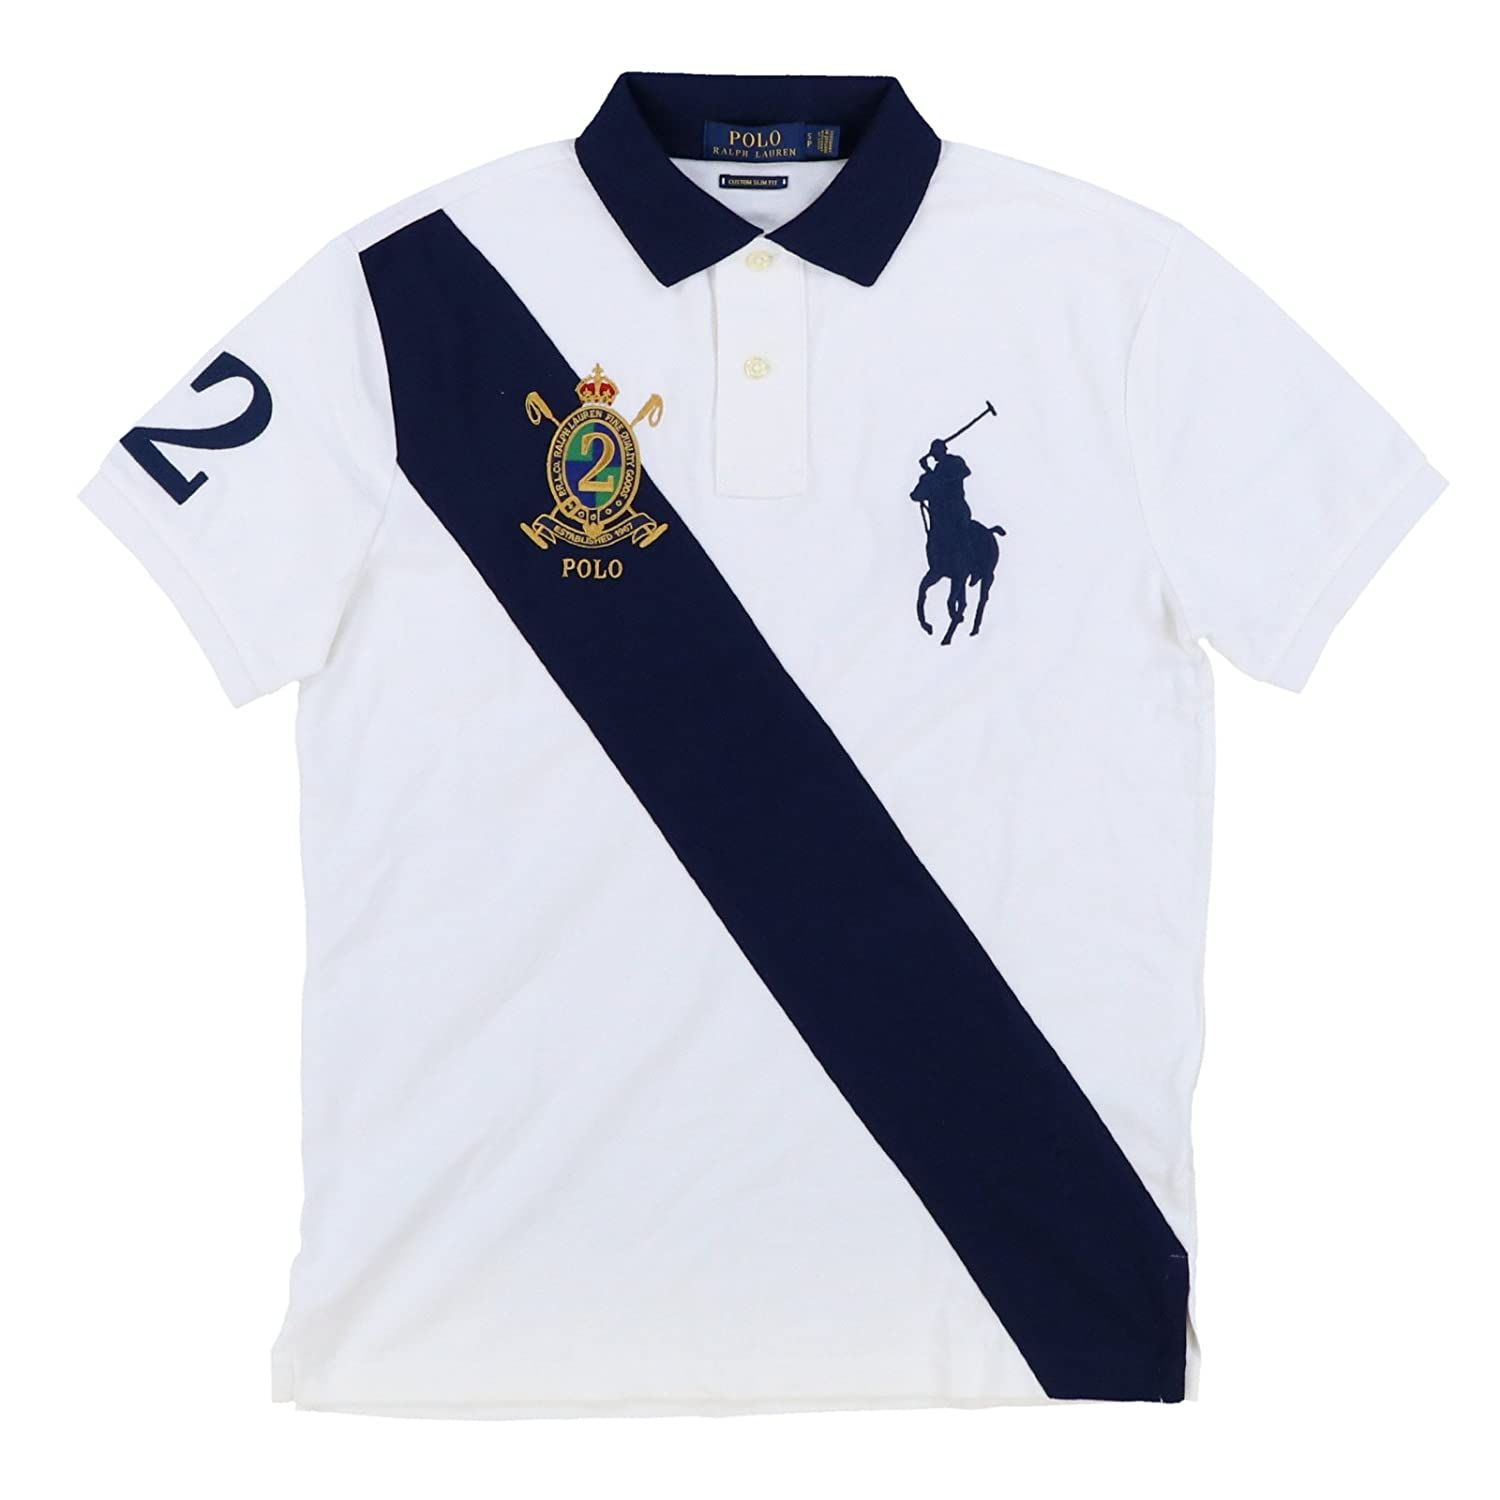 e9f4d4d3 Polo Ralph Lauren Men's Big Pony Crest Custom Slim Fit Mesh Sash Polo Shirt  (X-Large, White Mu) at Amazon Men's Clothing store: